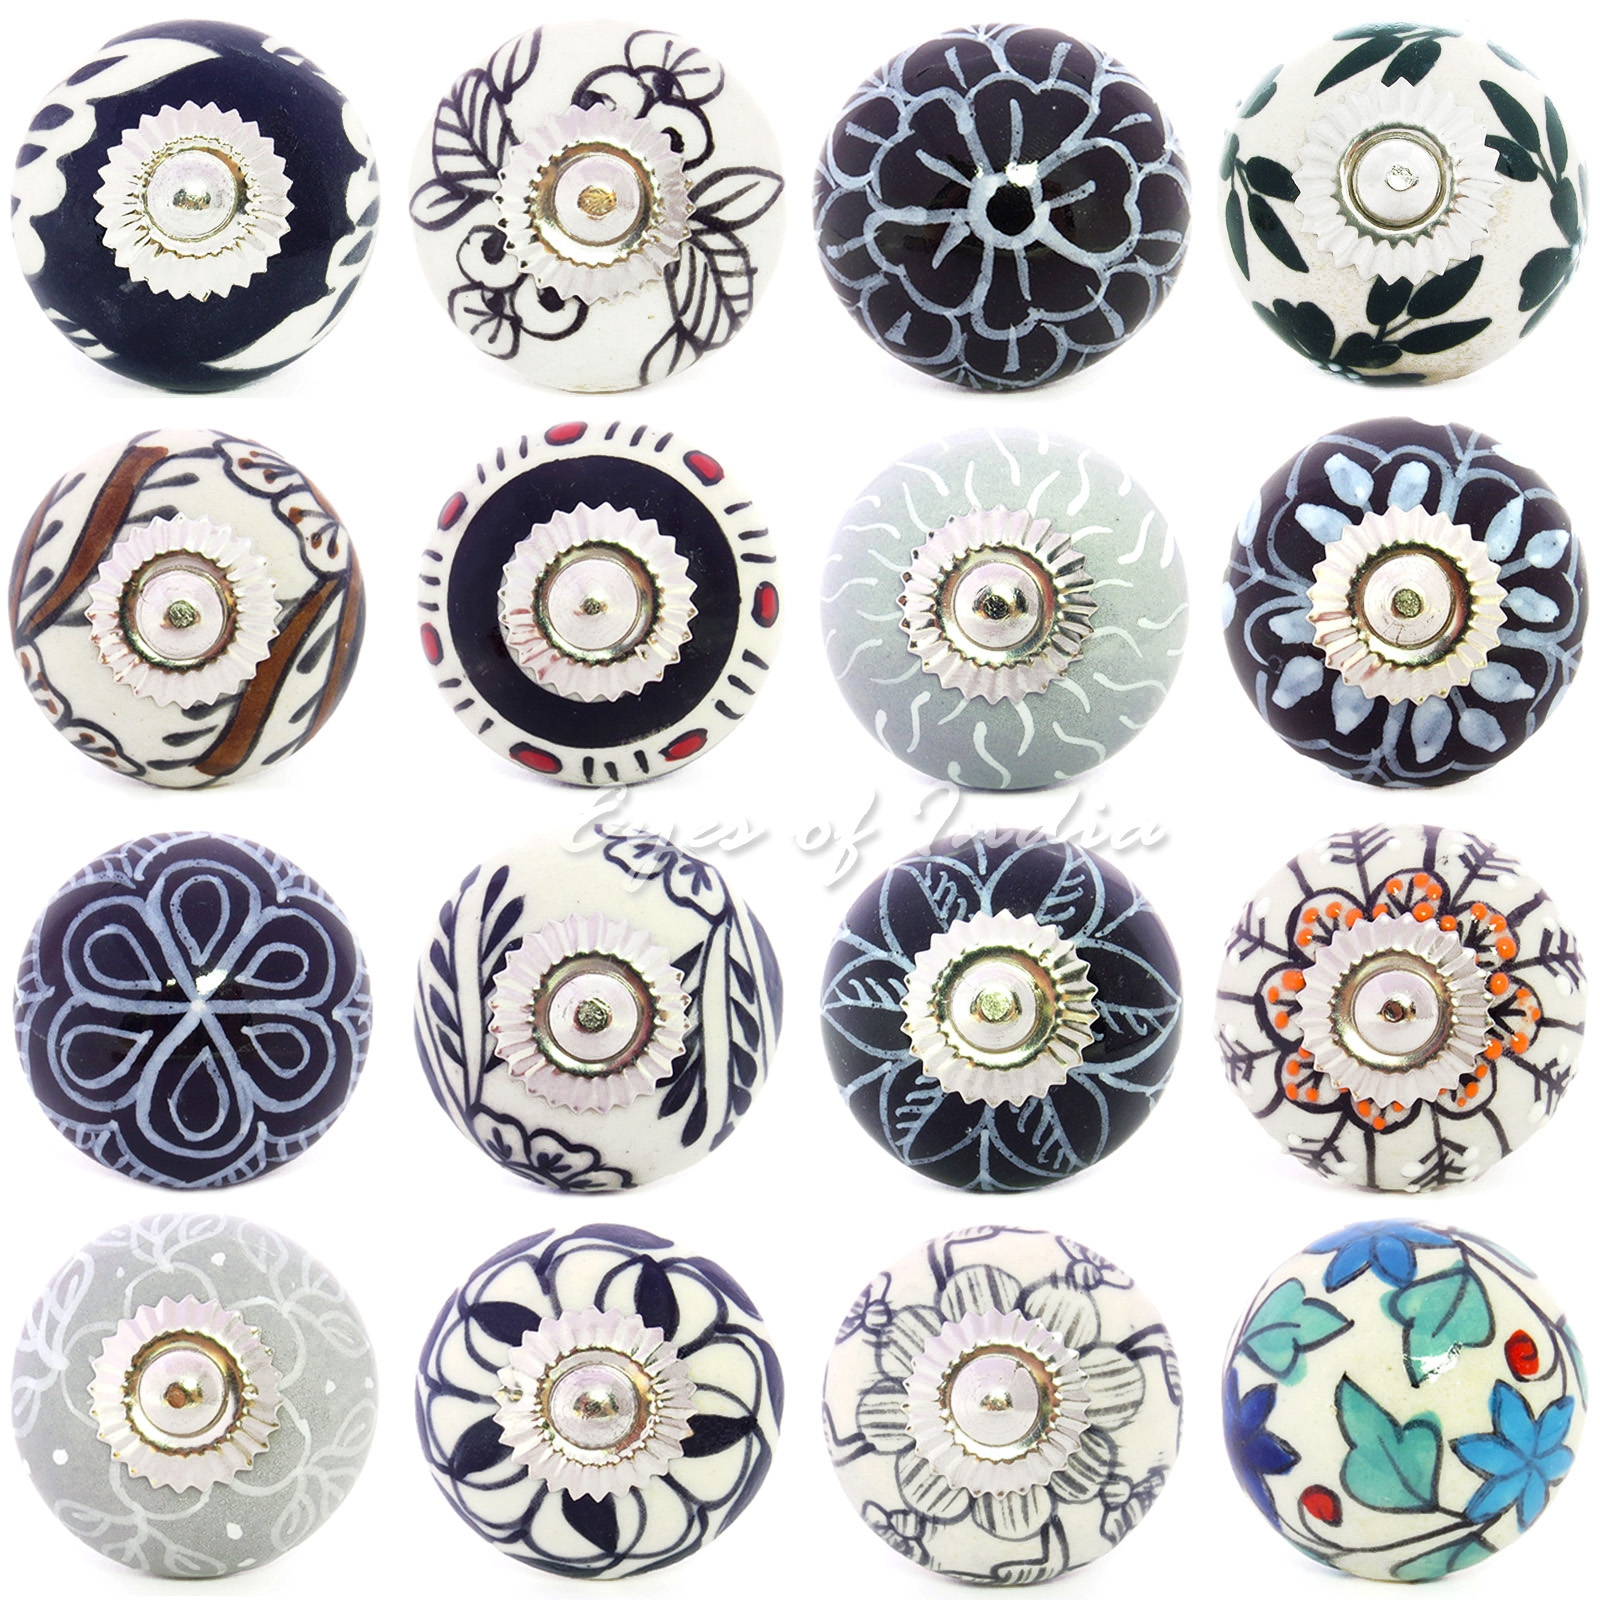 Decorative Furniture Door Knobs